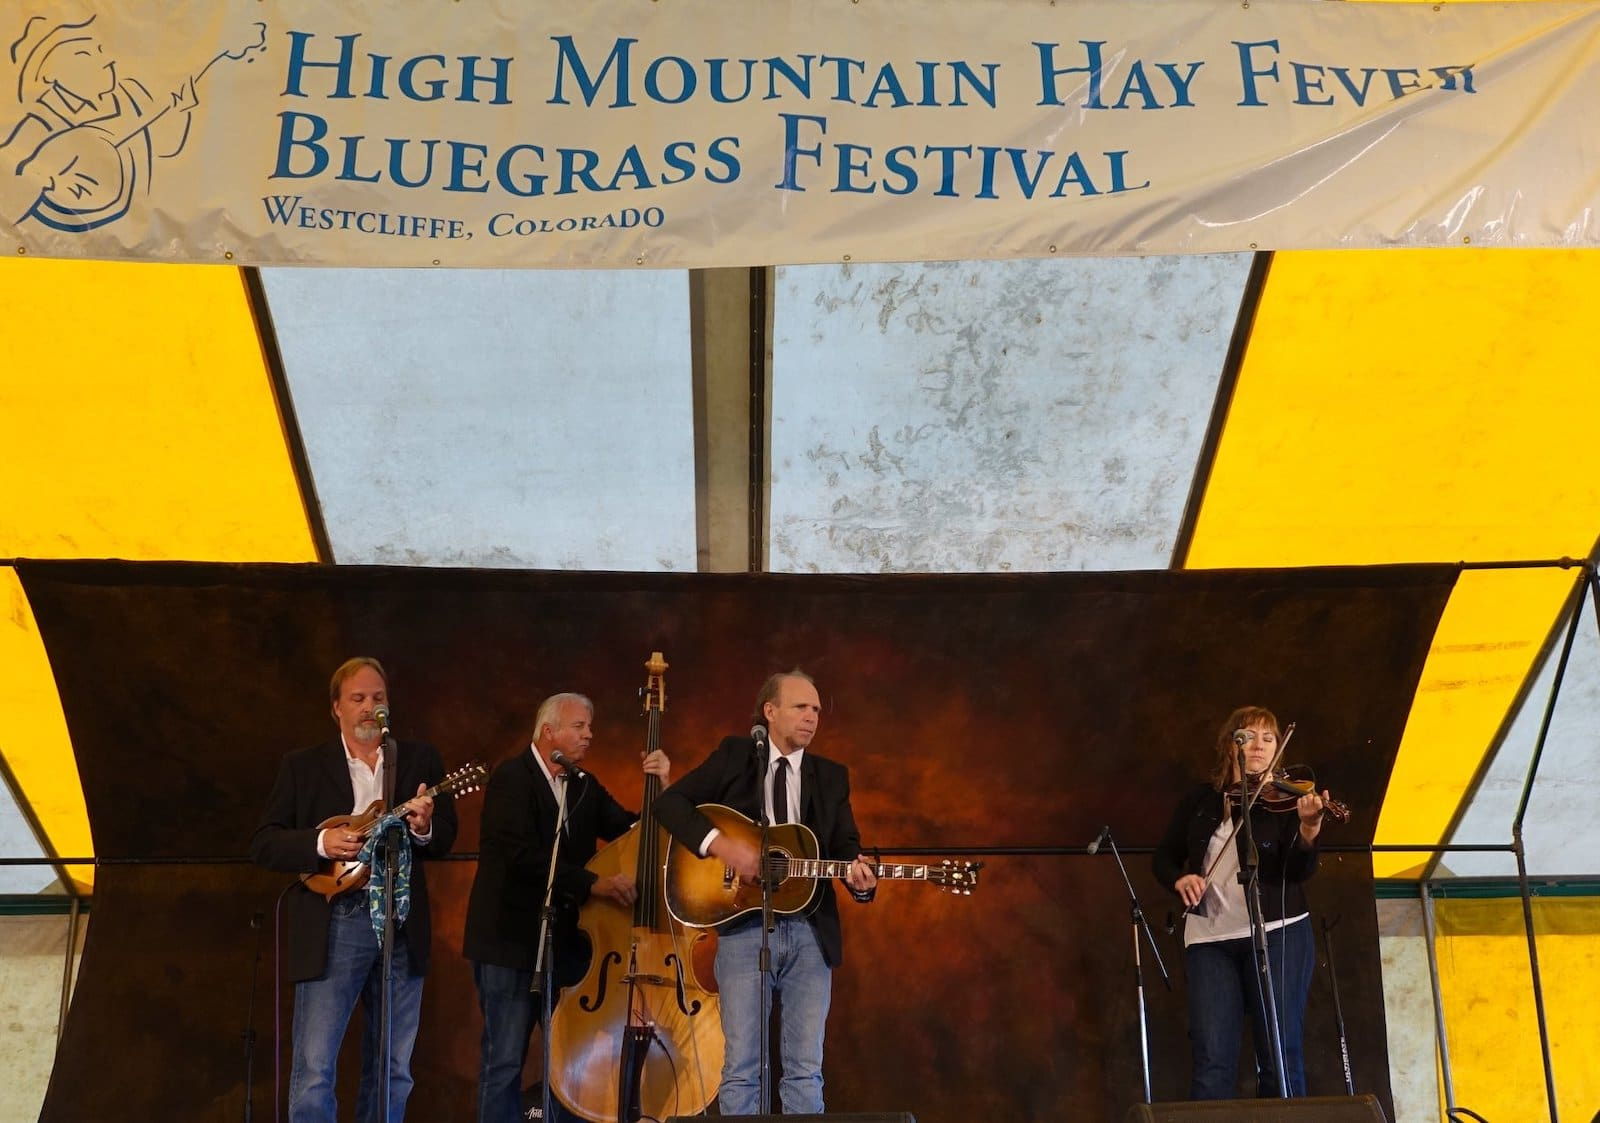 Image of the High Mountain Hay Fever Bluegress Festival stage in Westcliffe, CO